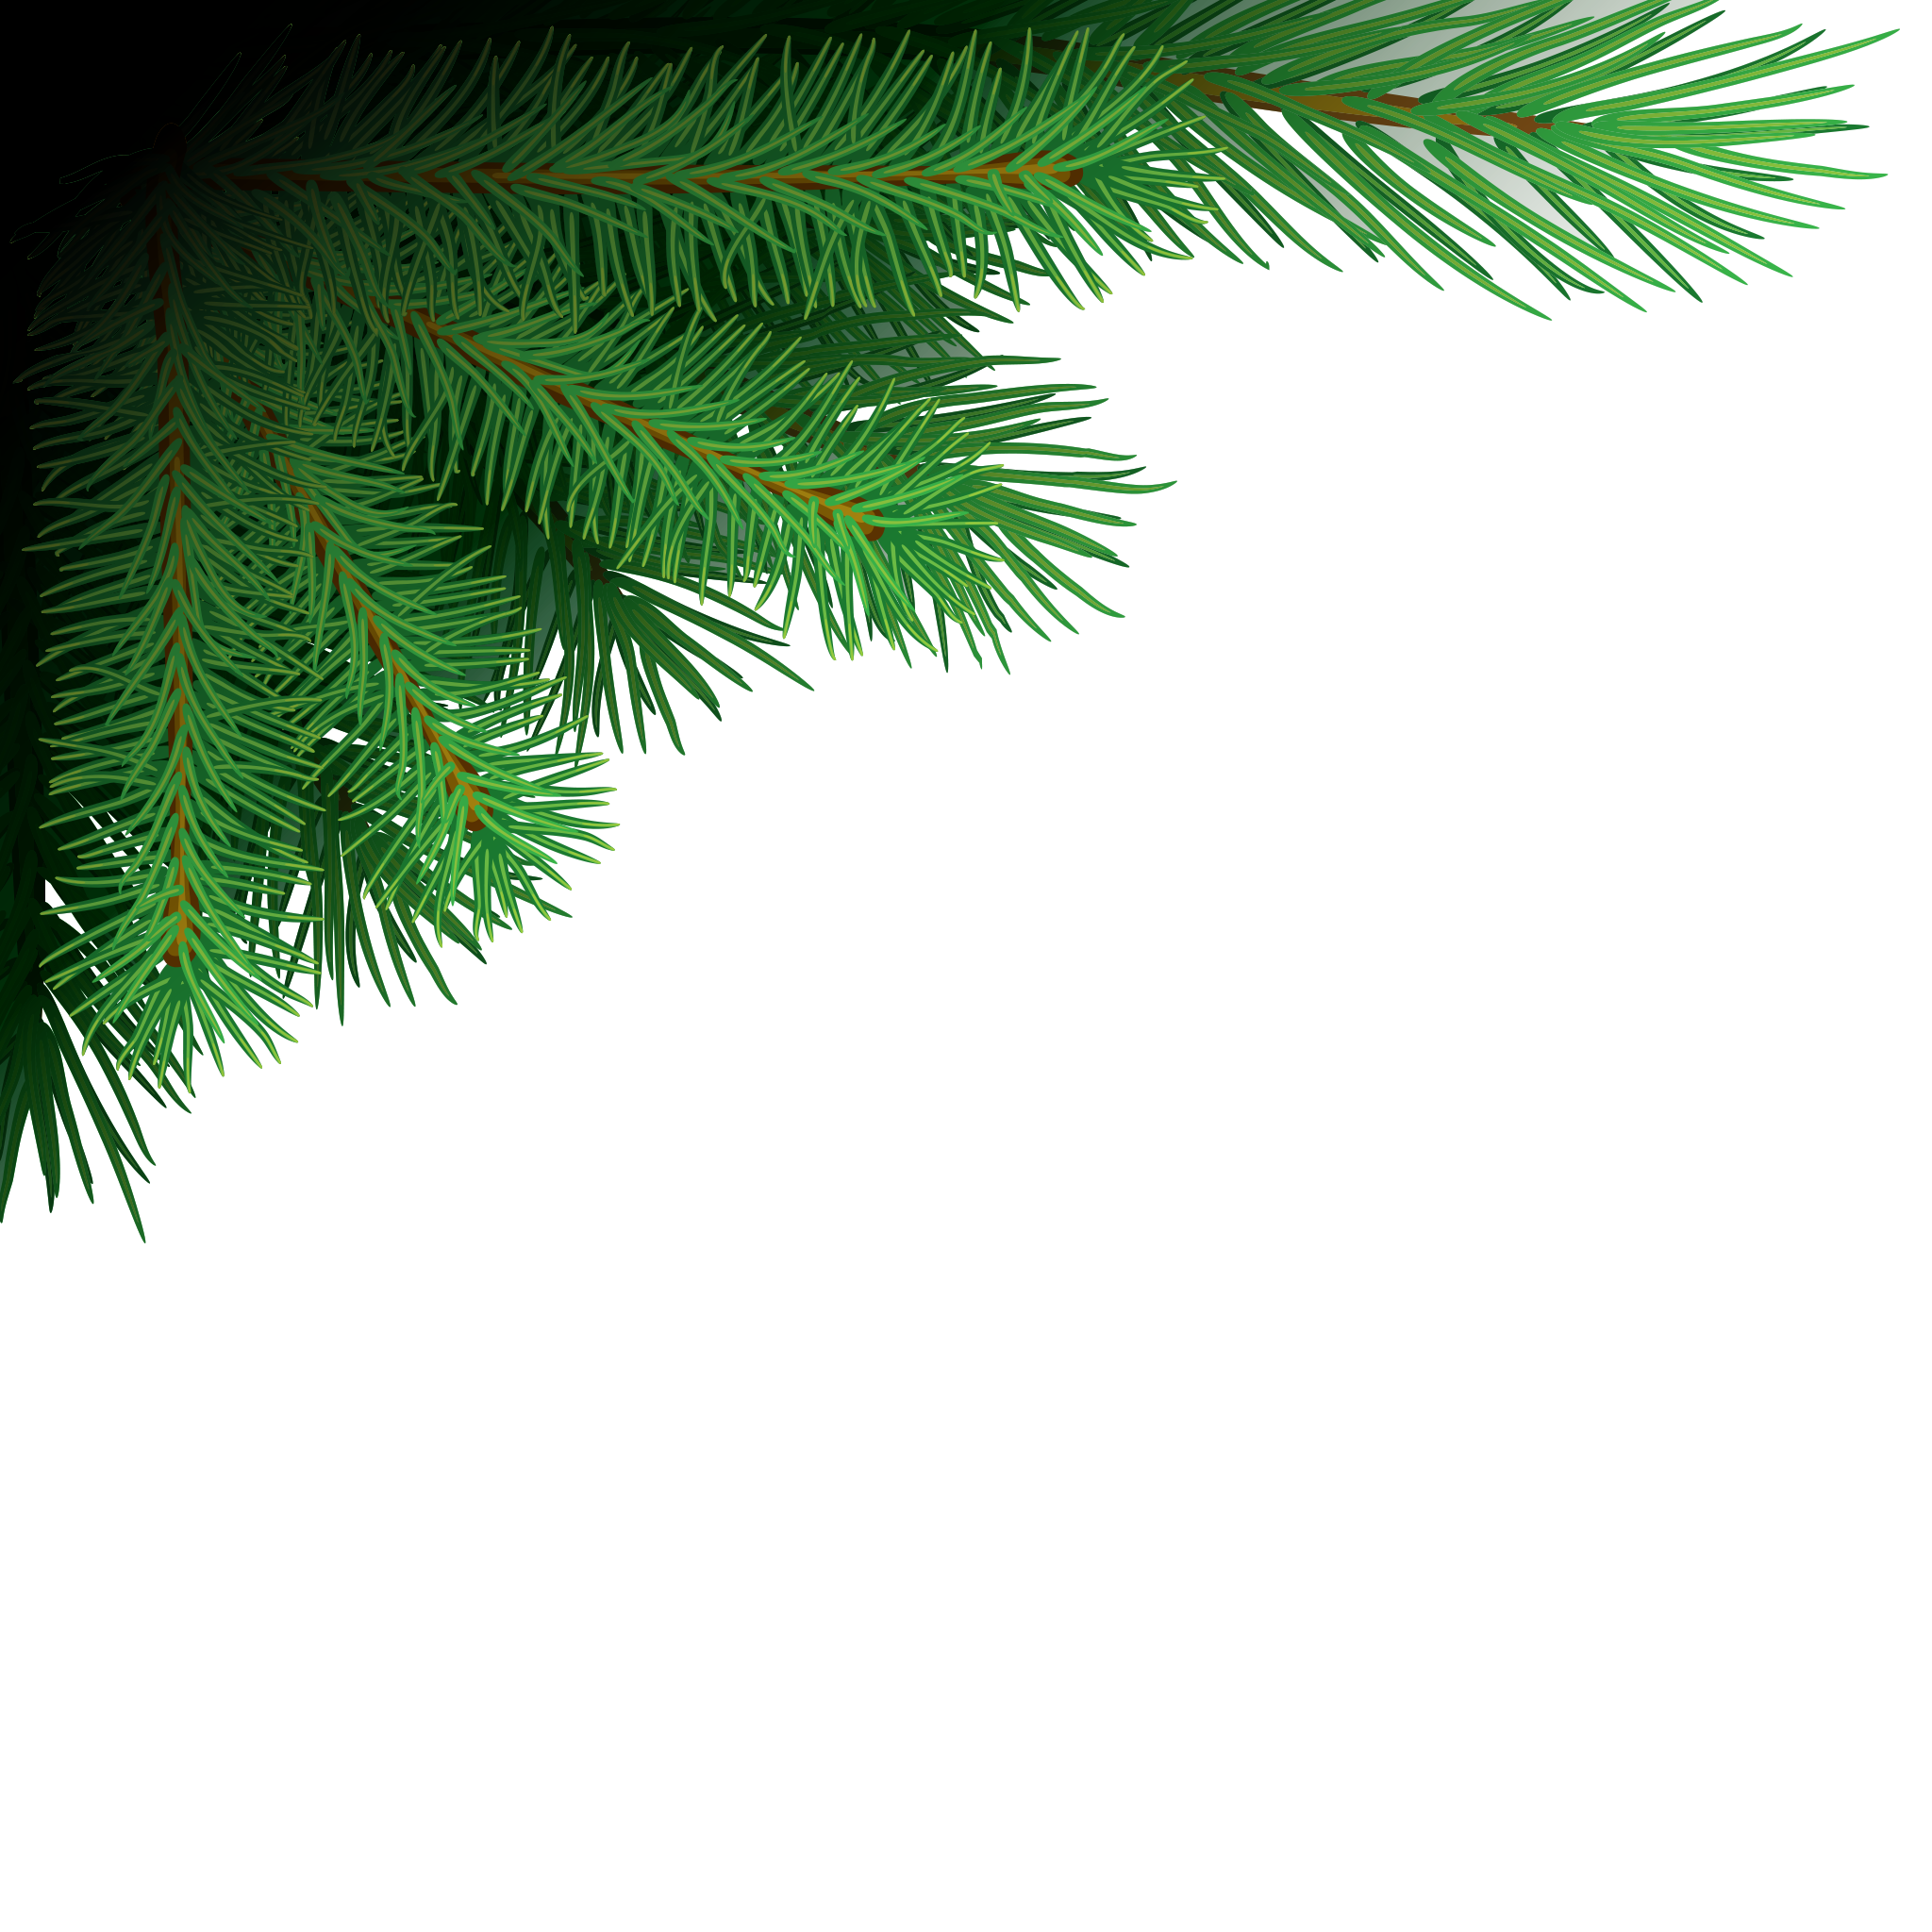 Christmas Branch Png.Christmas Tree Branch Transparent Png Clipart Free